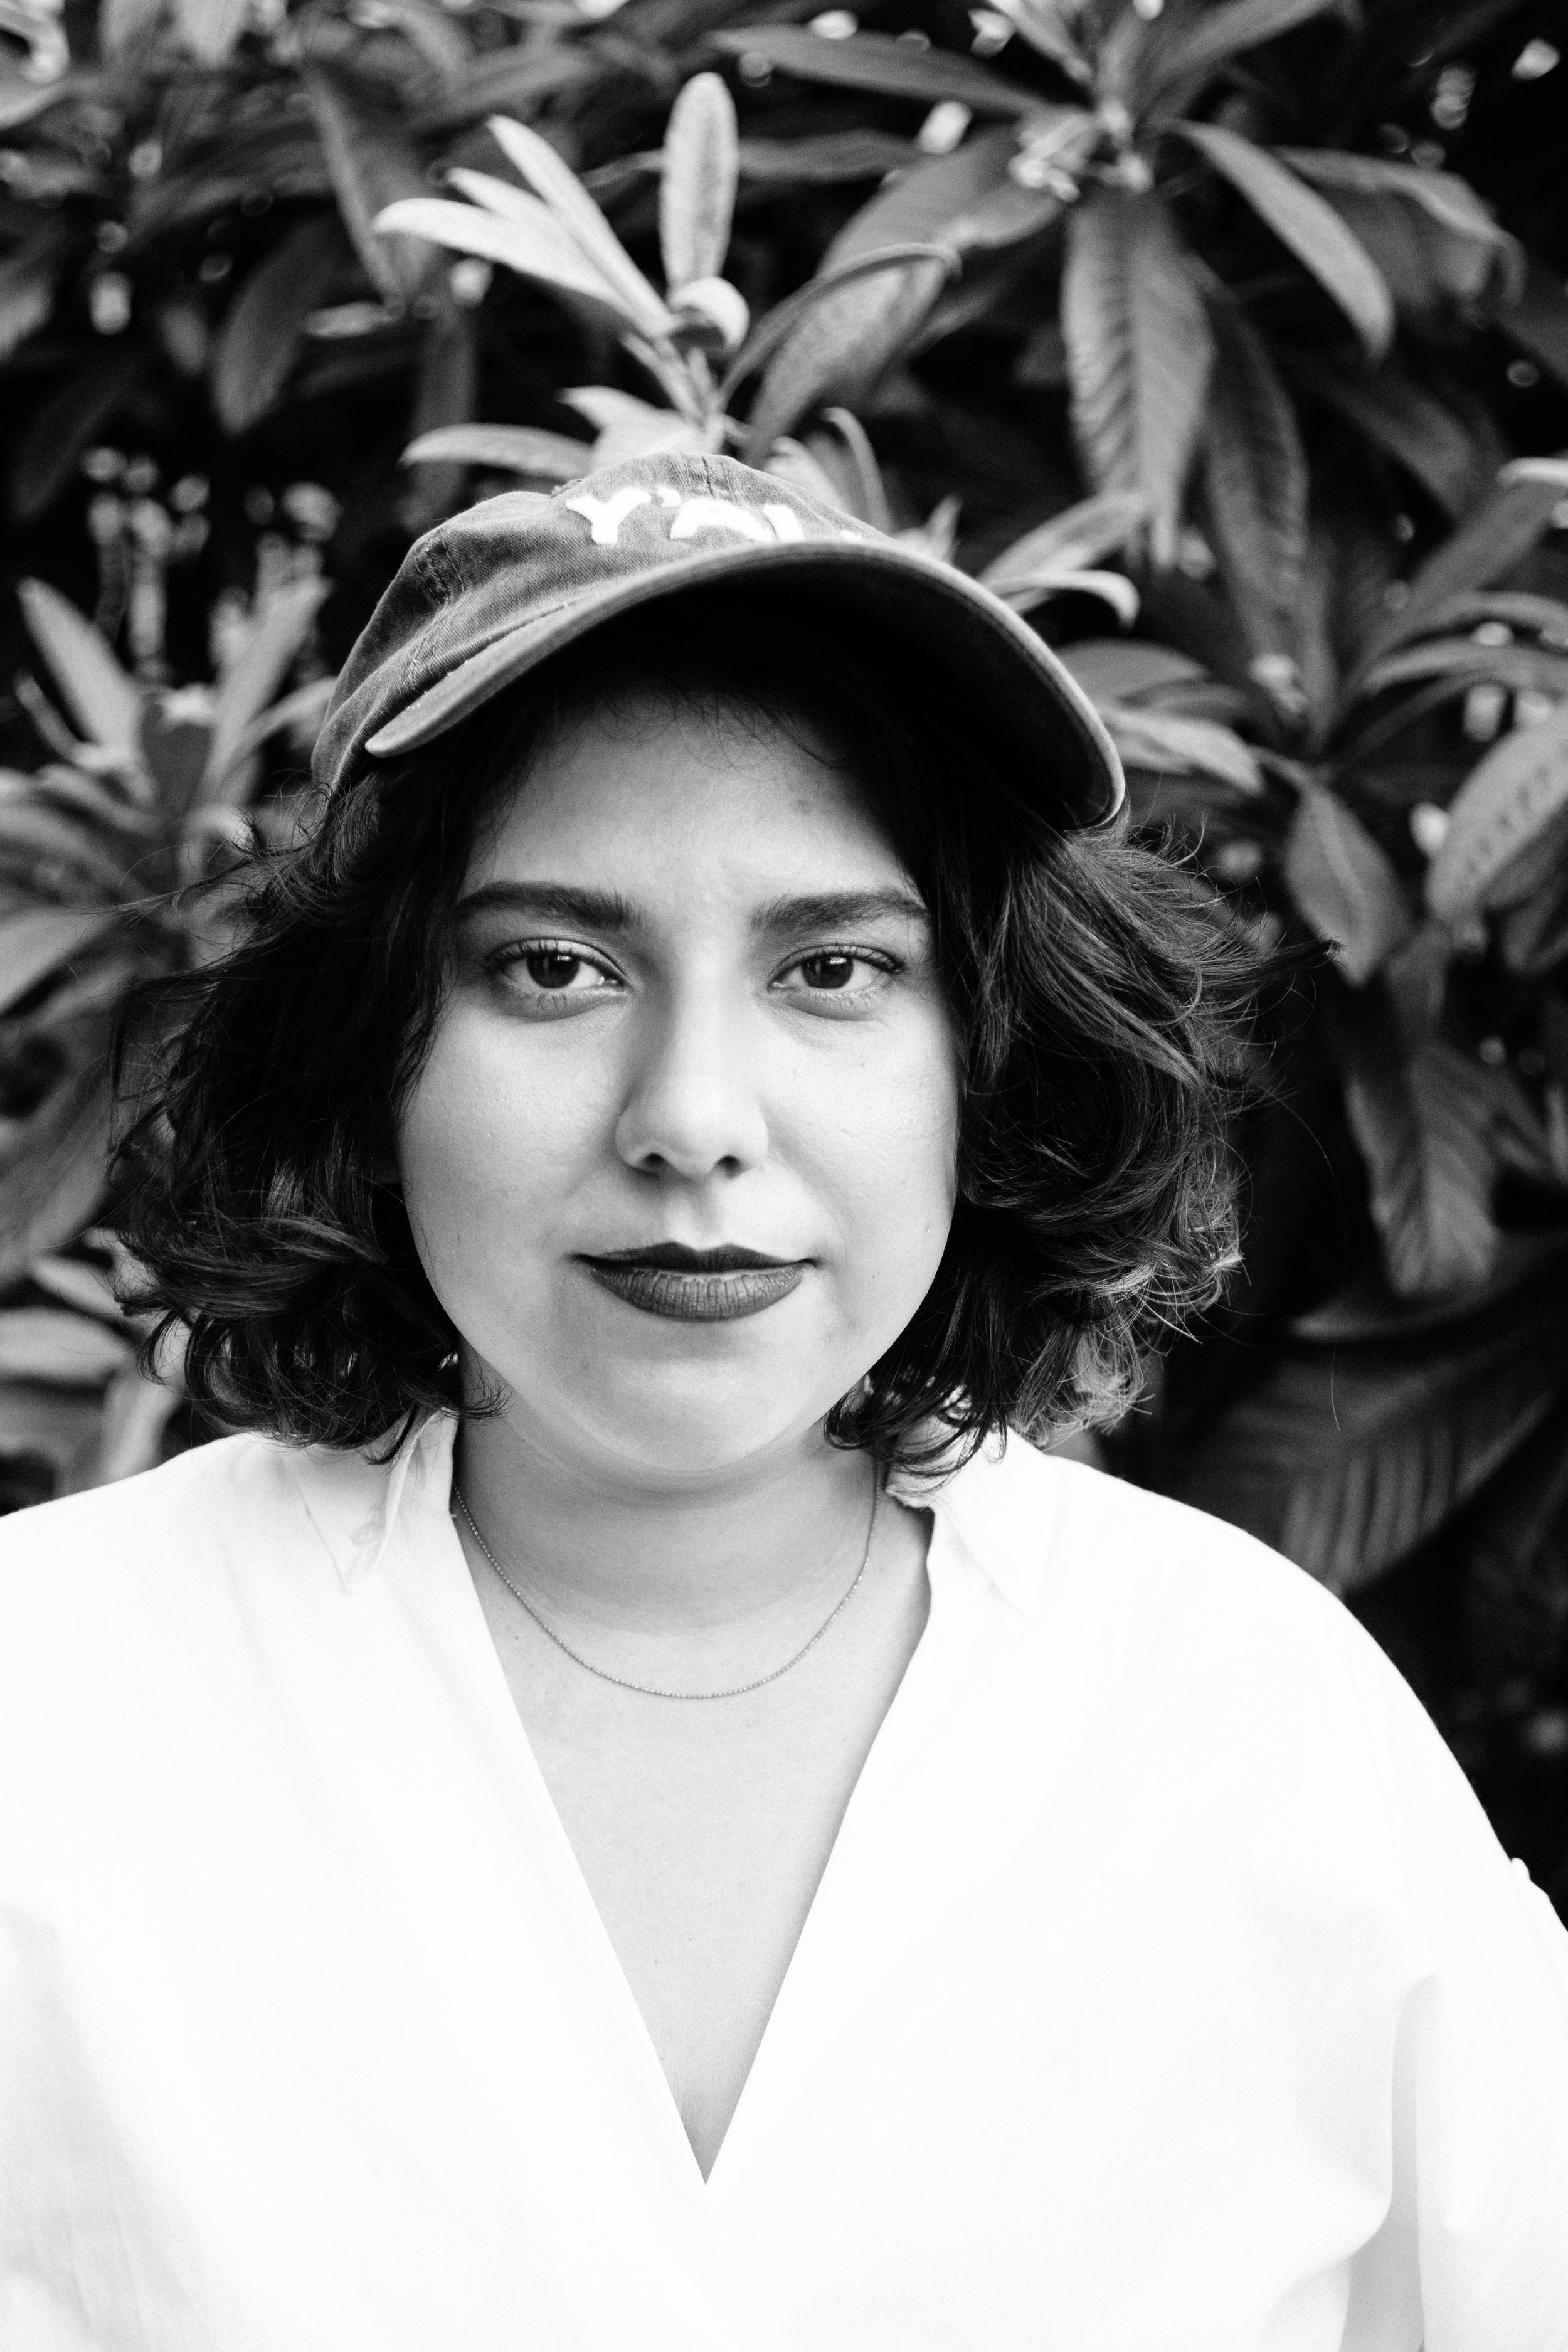 Illyana Bocanegra - is a filmmaker and the Project & Ops Lead for #BossBabesATX. Boss Babes recently hosted their film screening series for Babes Fest at Motion Media Arts Center, so we chatted with Illyana to talk about her involvement with this incredible non-profit organization!